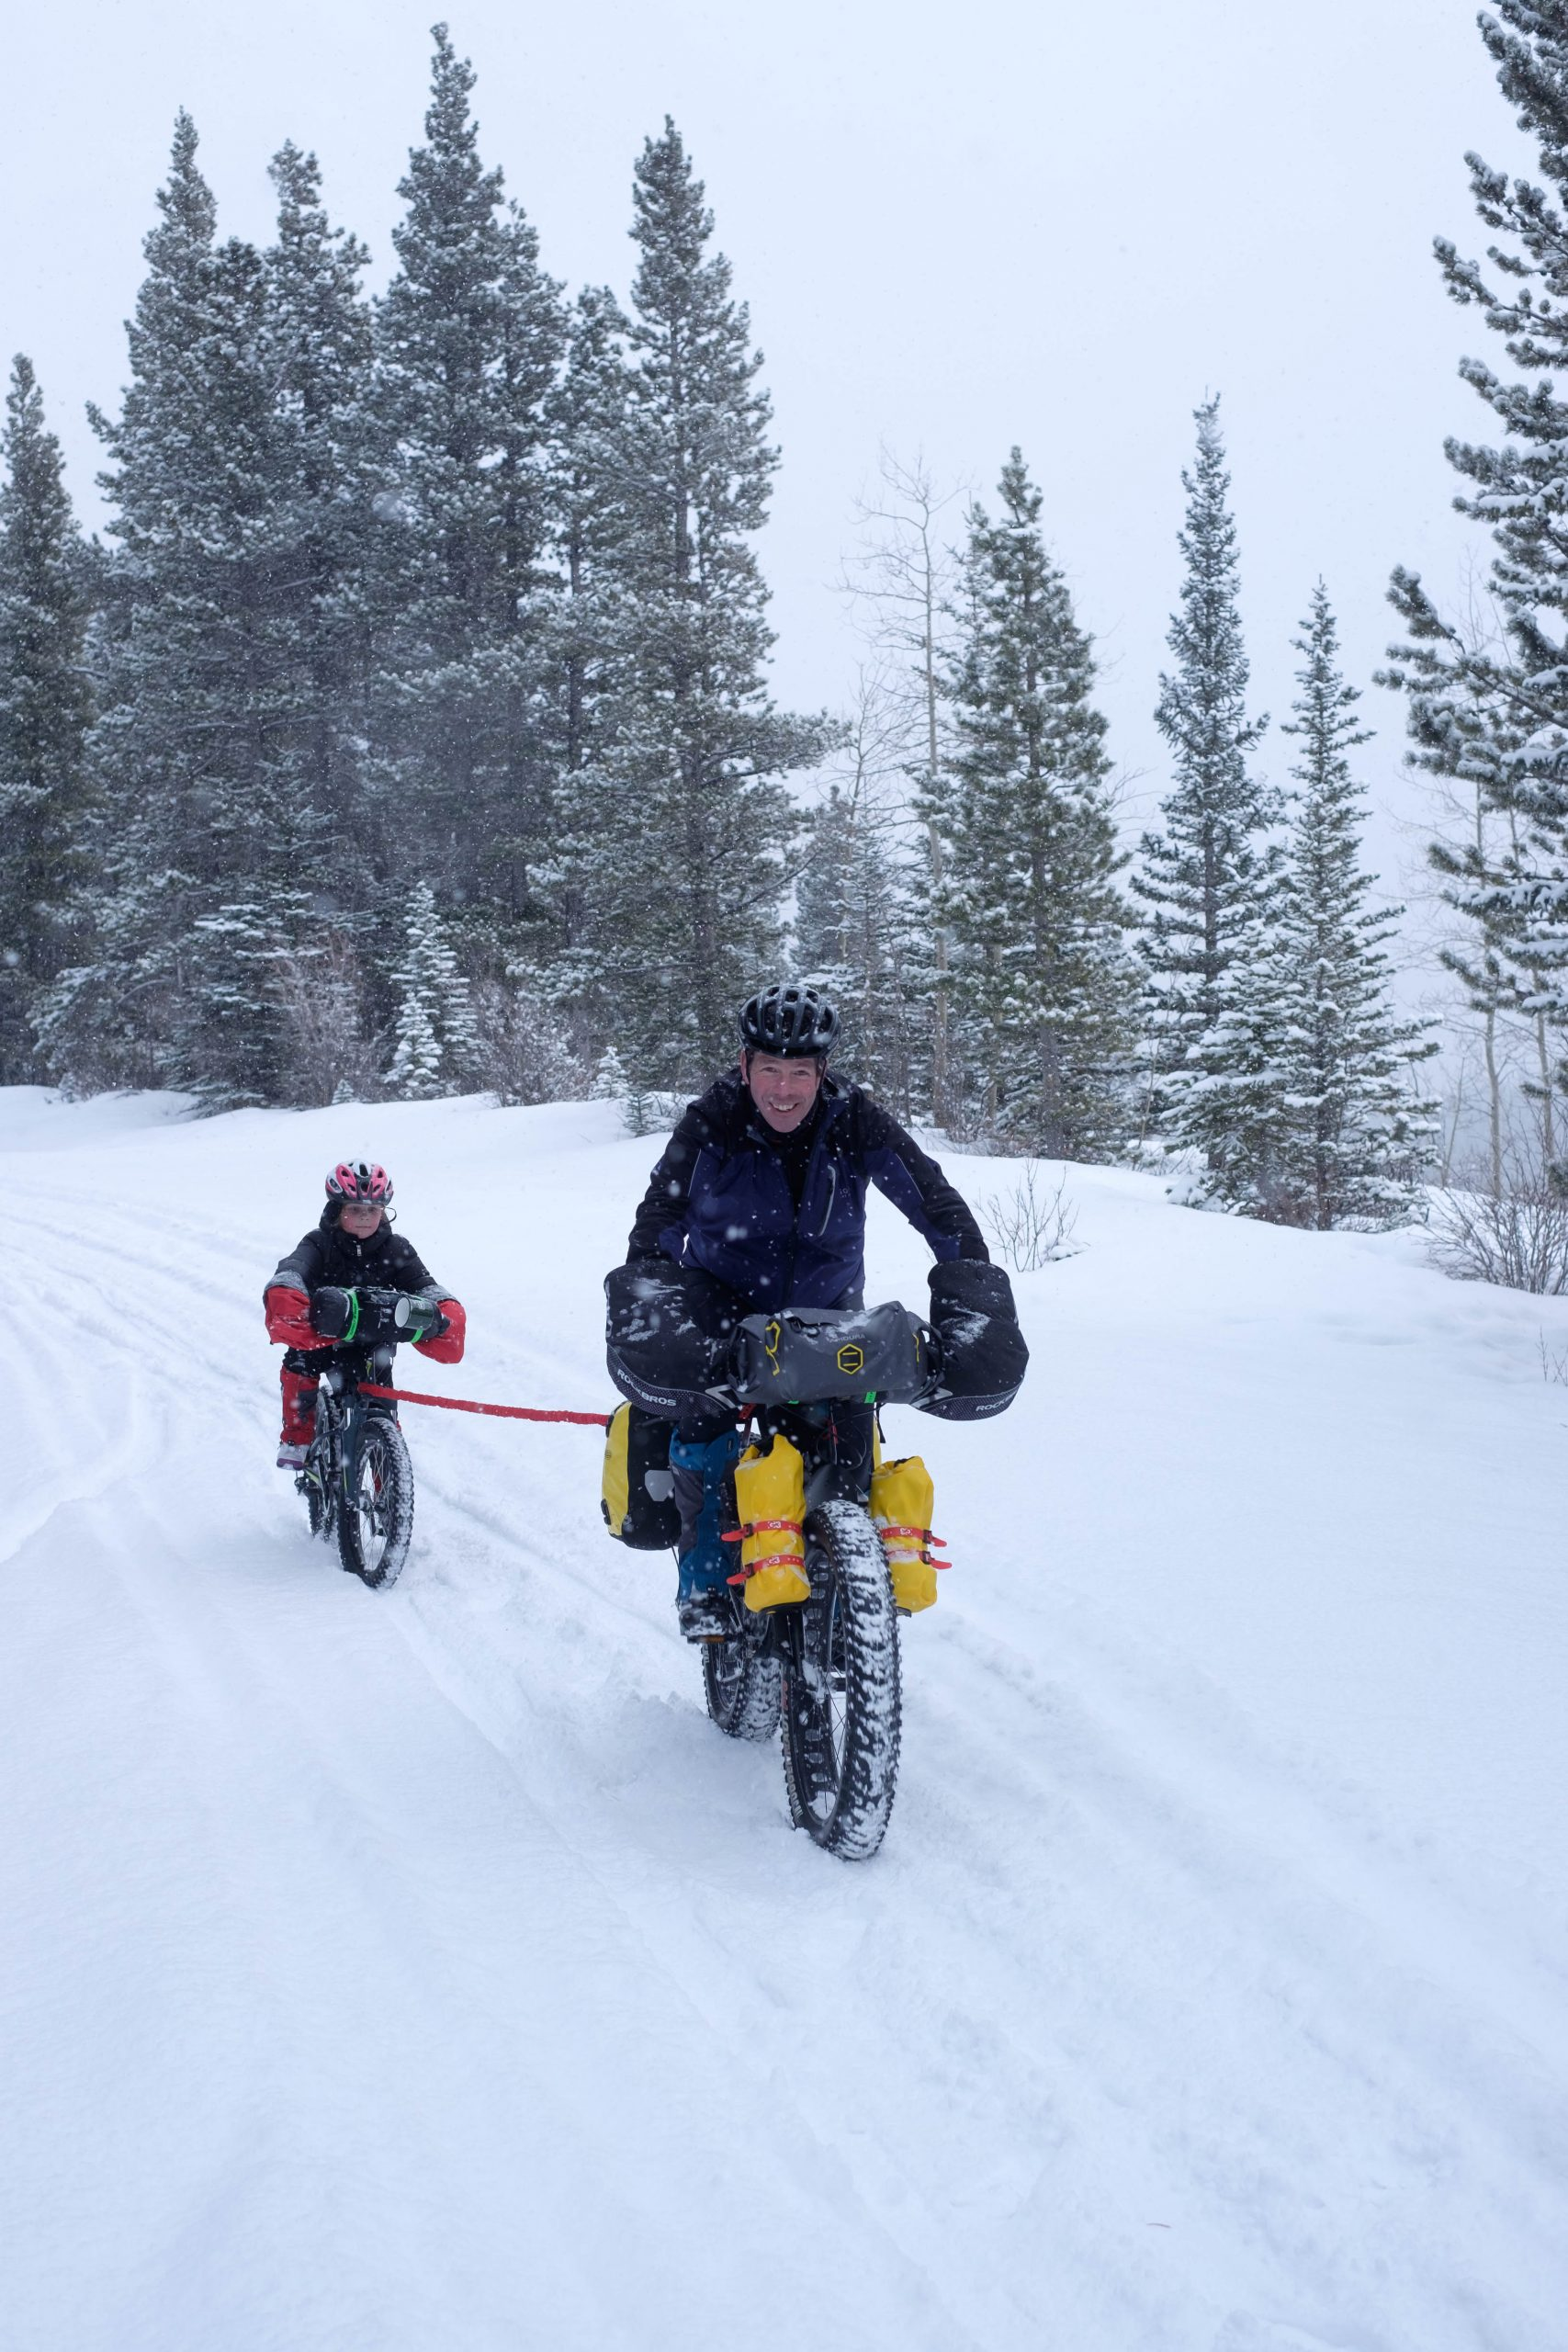 Family Fatbikepacking – Starting Them Young on the Bikepack Canada Winter Overnight